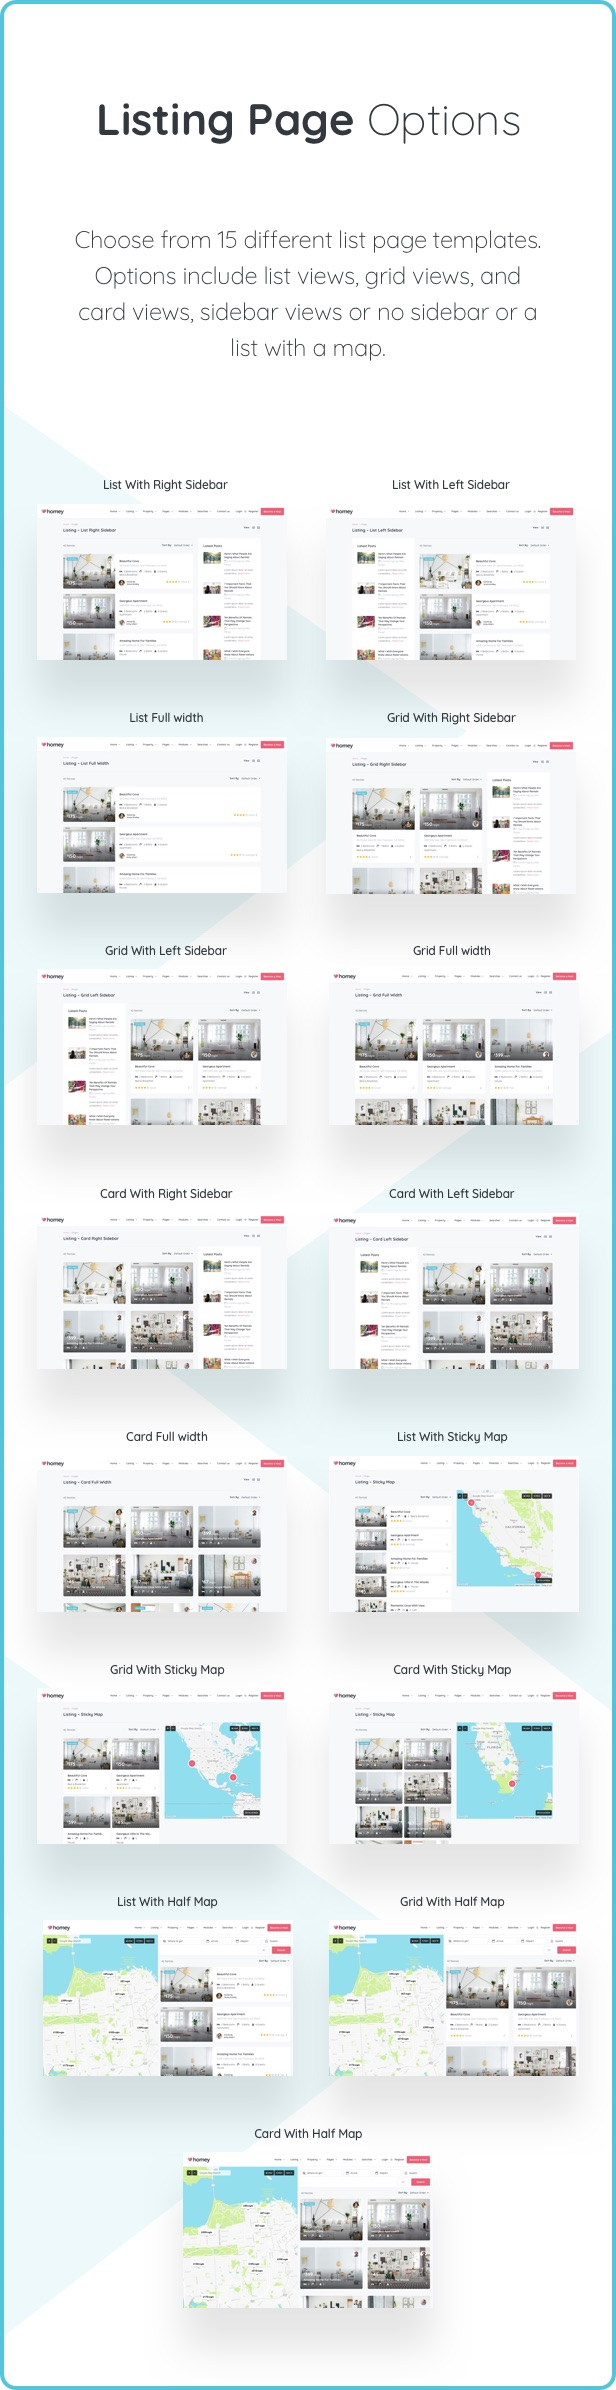 Homey - Booking and Rentals WordPress Theme - 16  Download Homey – Booking and Rentals WordPress Theme nulled listing options